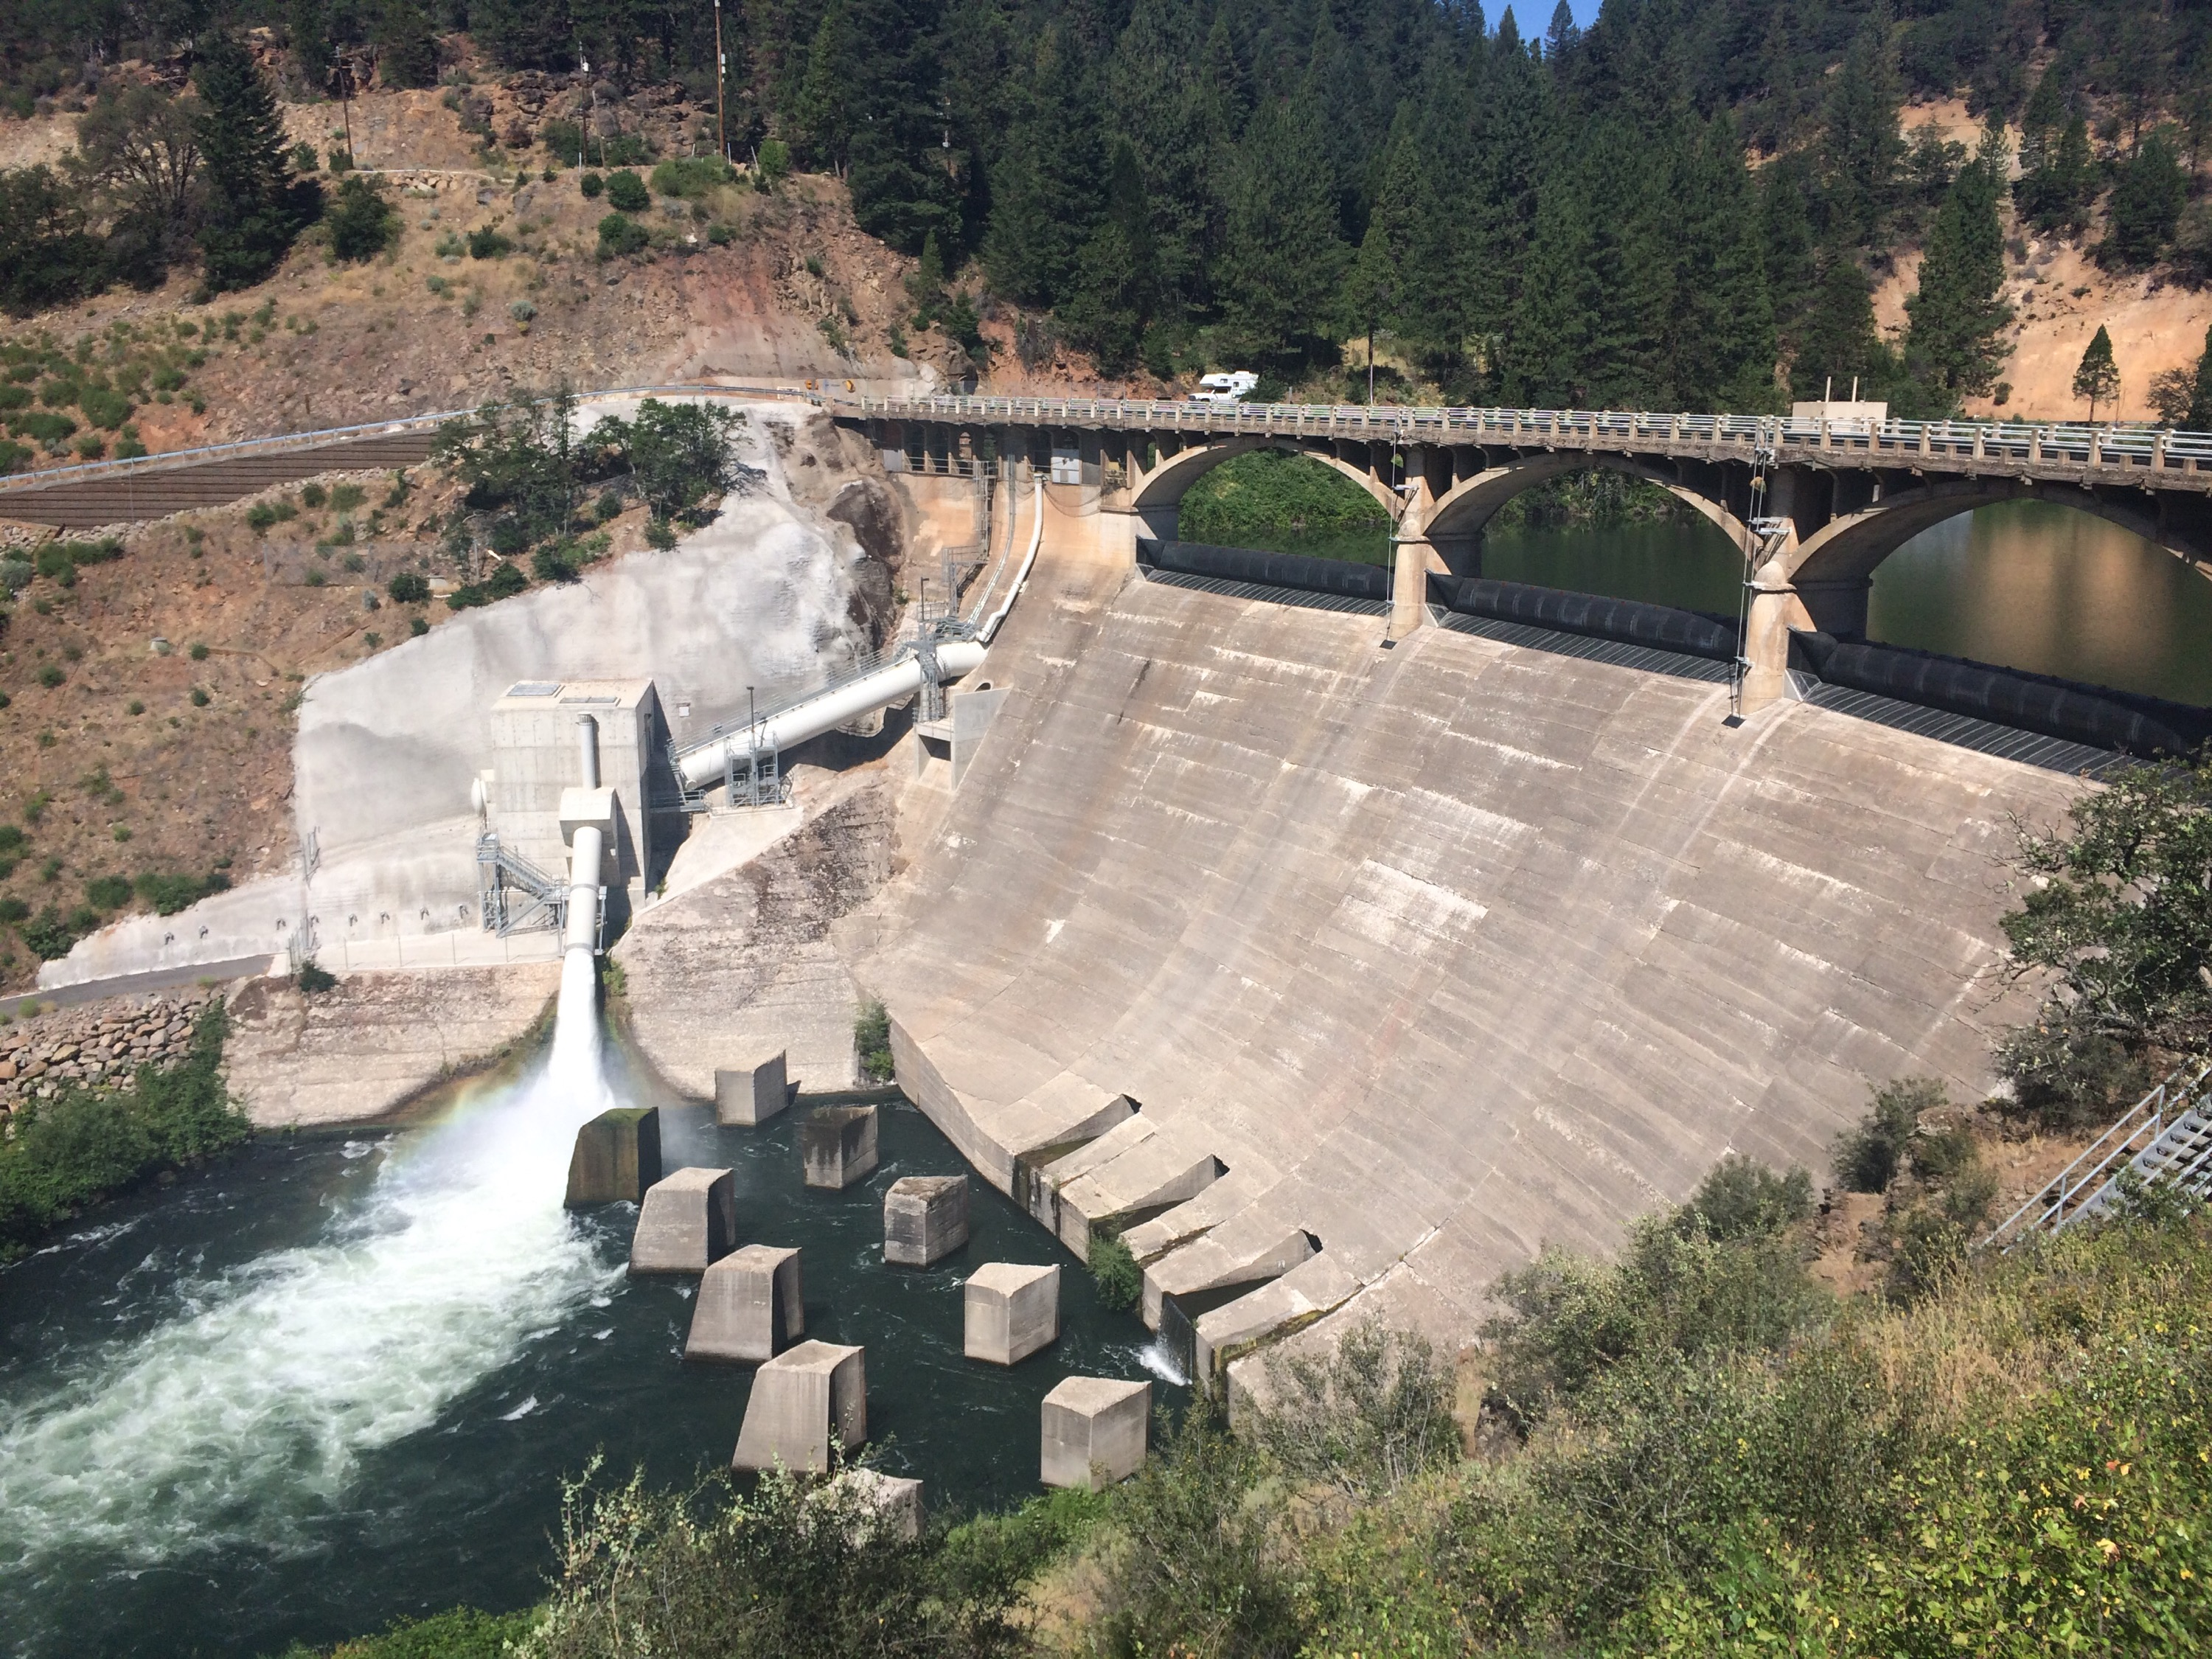 Dam on the Pit River